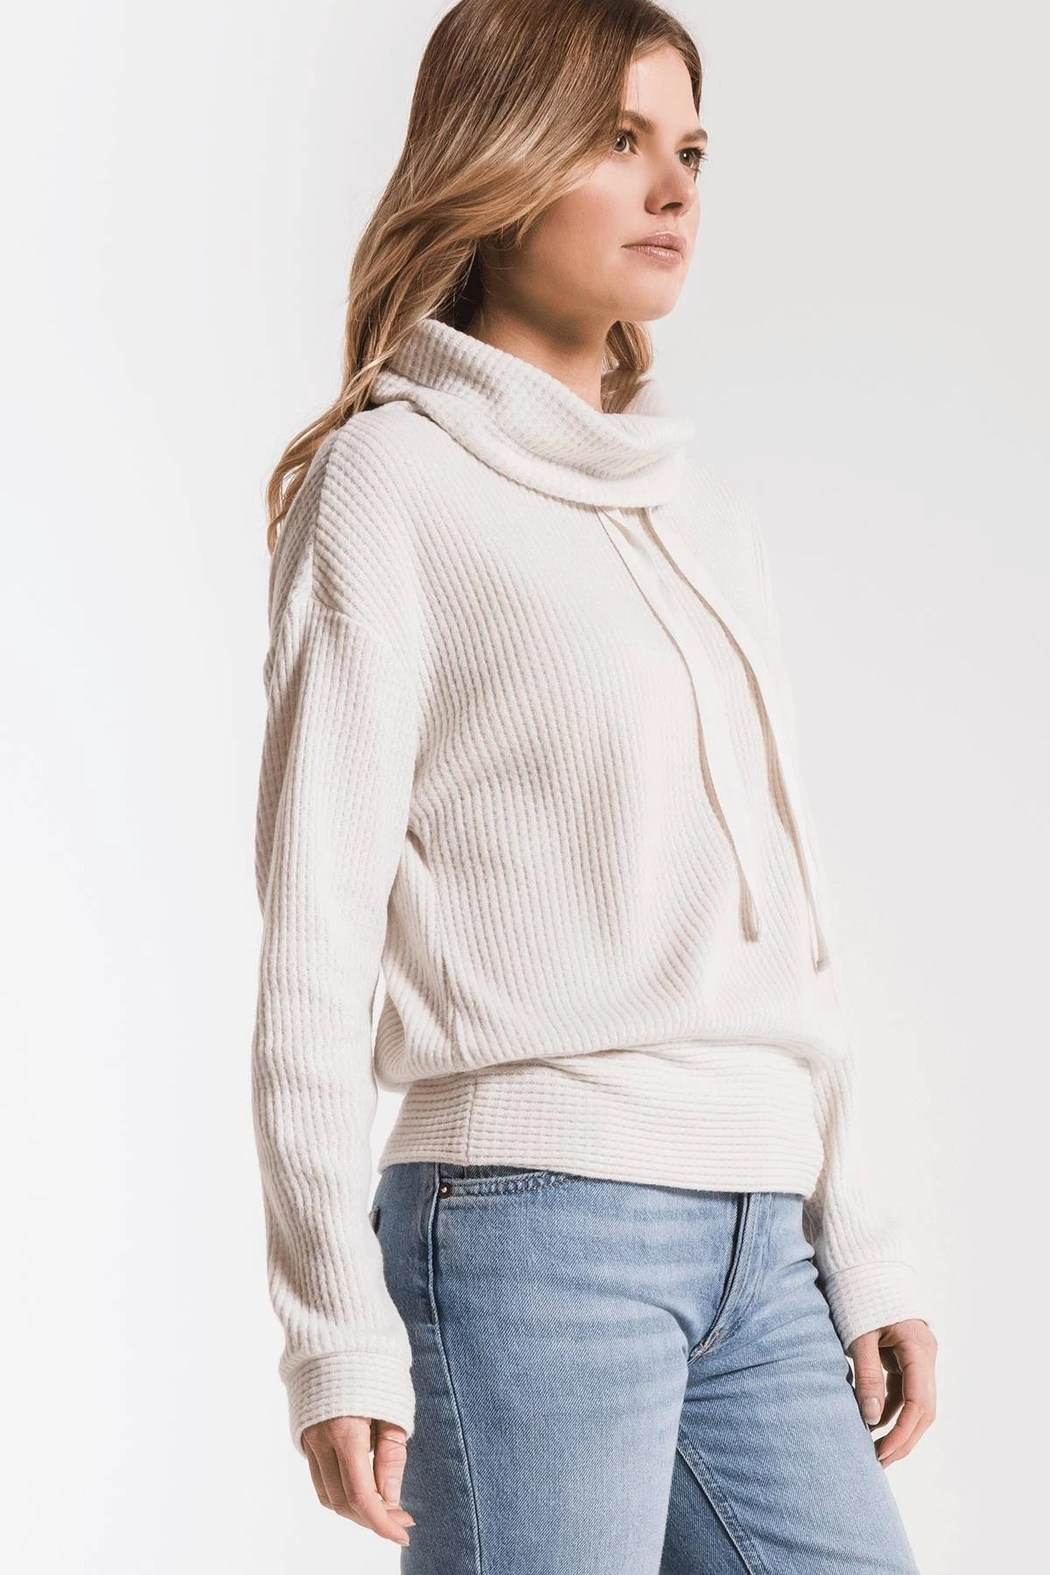 z supply Cowl Neck Waffle Thermal - Side Cropped Image